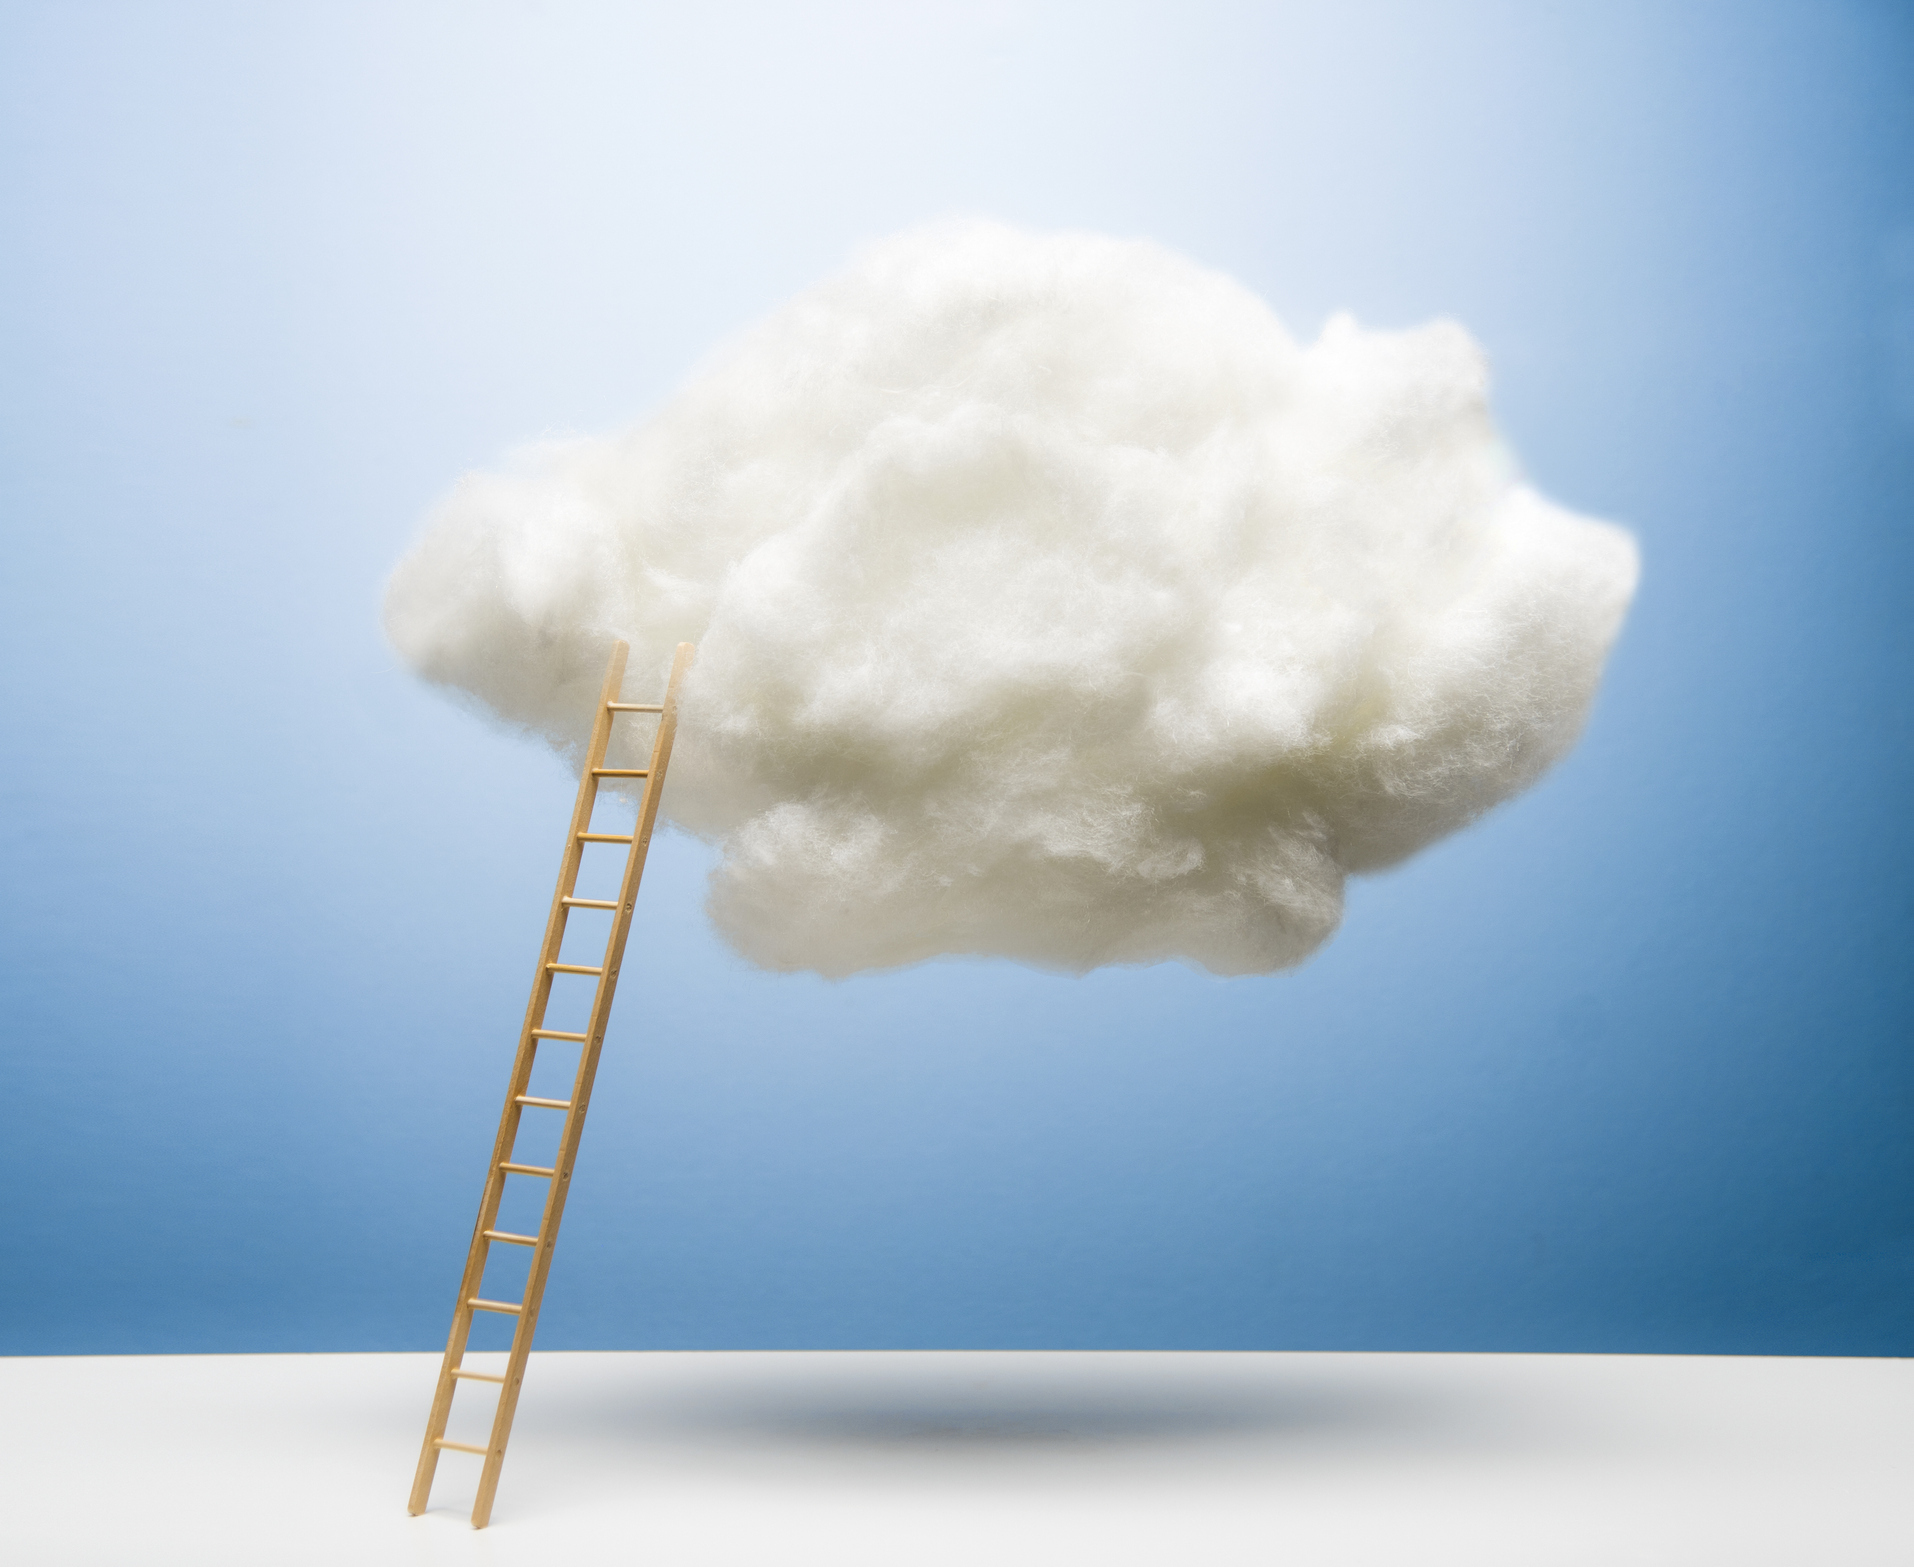 Ladder leaning on white puffy cloud on blue studio background, white surface, drop shadow